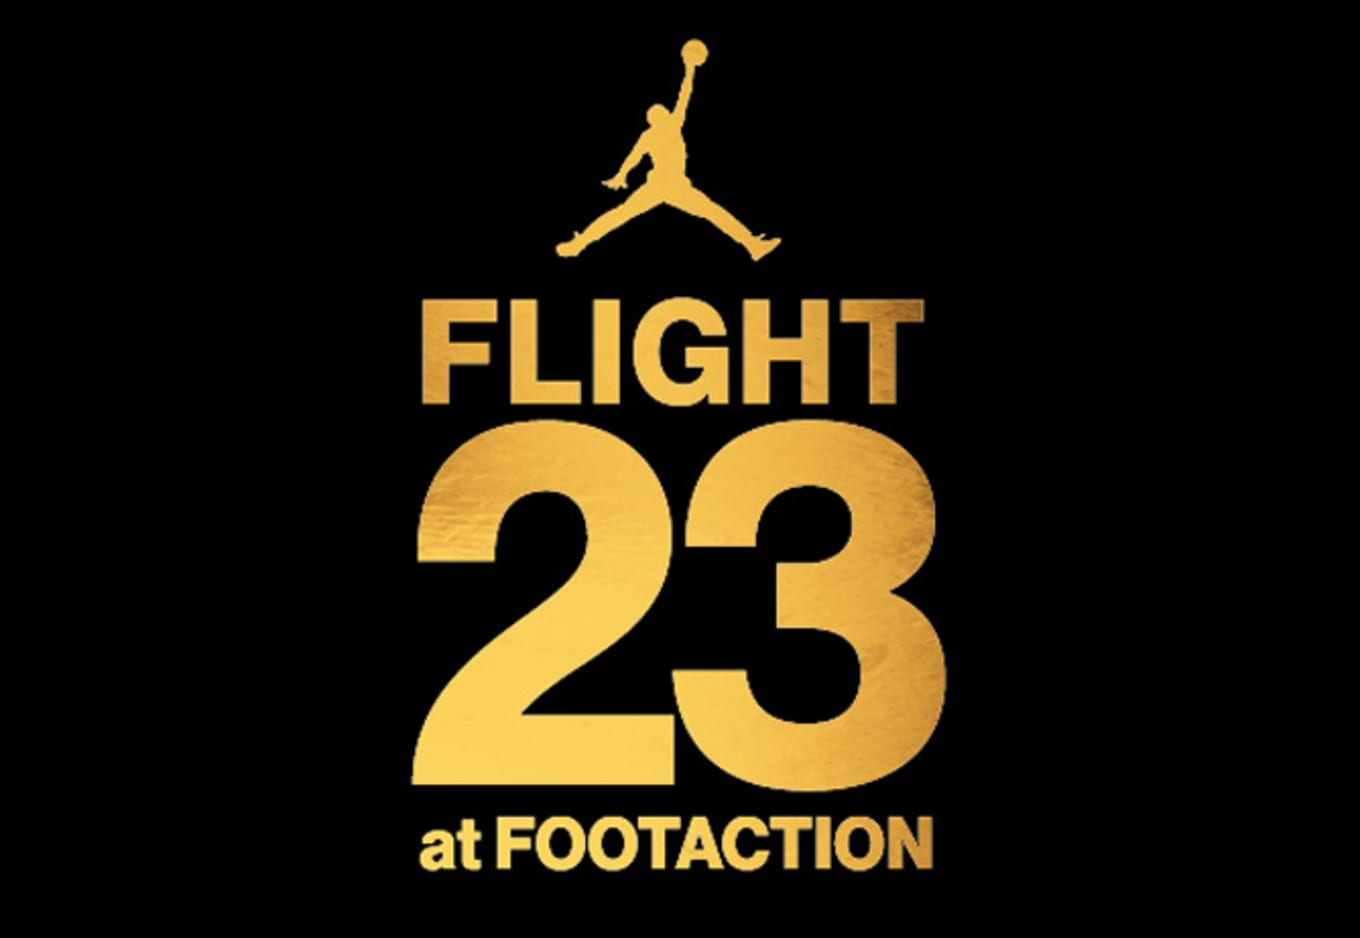 c4452c02bcf9a9 Footaction s second Flight 23 Air Jordan store opens on Friday.